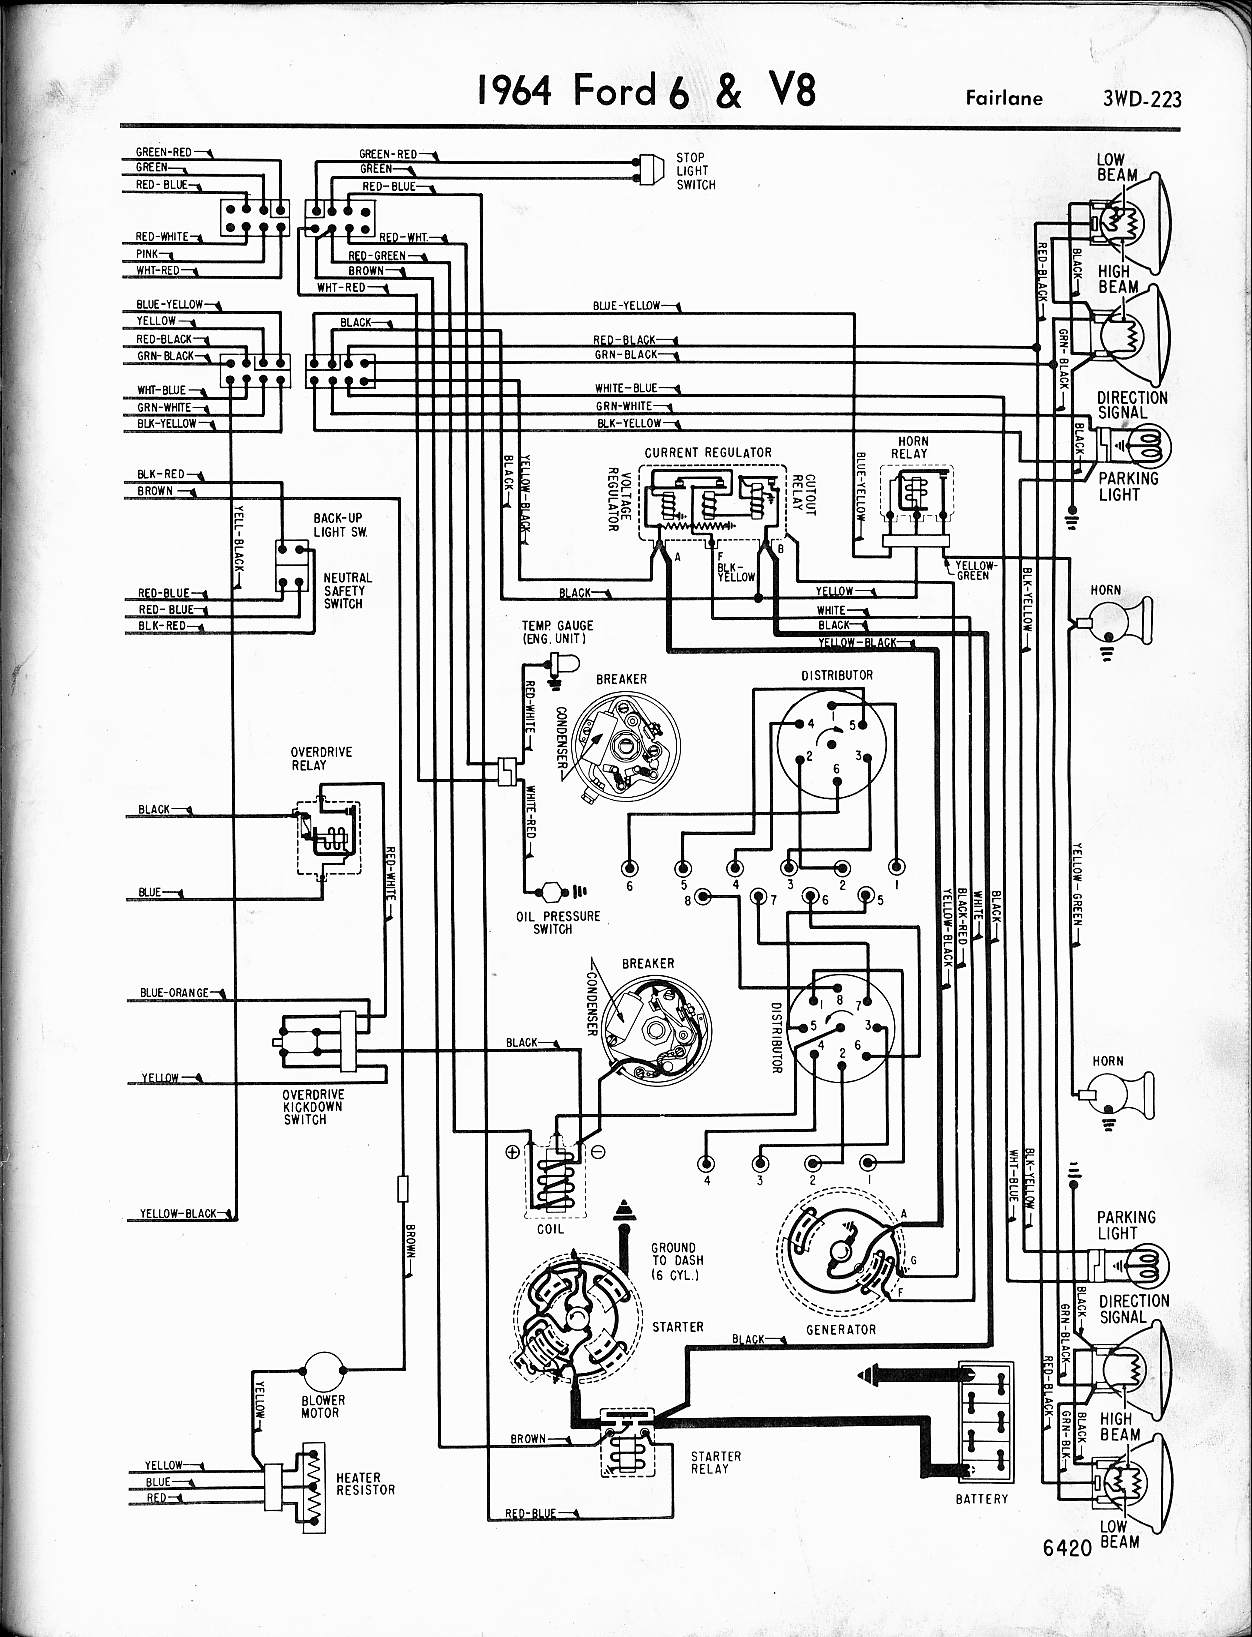 1967 Ford Galaxie 500 Wiring Diagram About 1968 F100 Turn Signal Schematics 1971 Torino